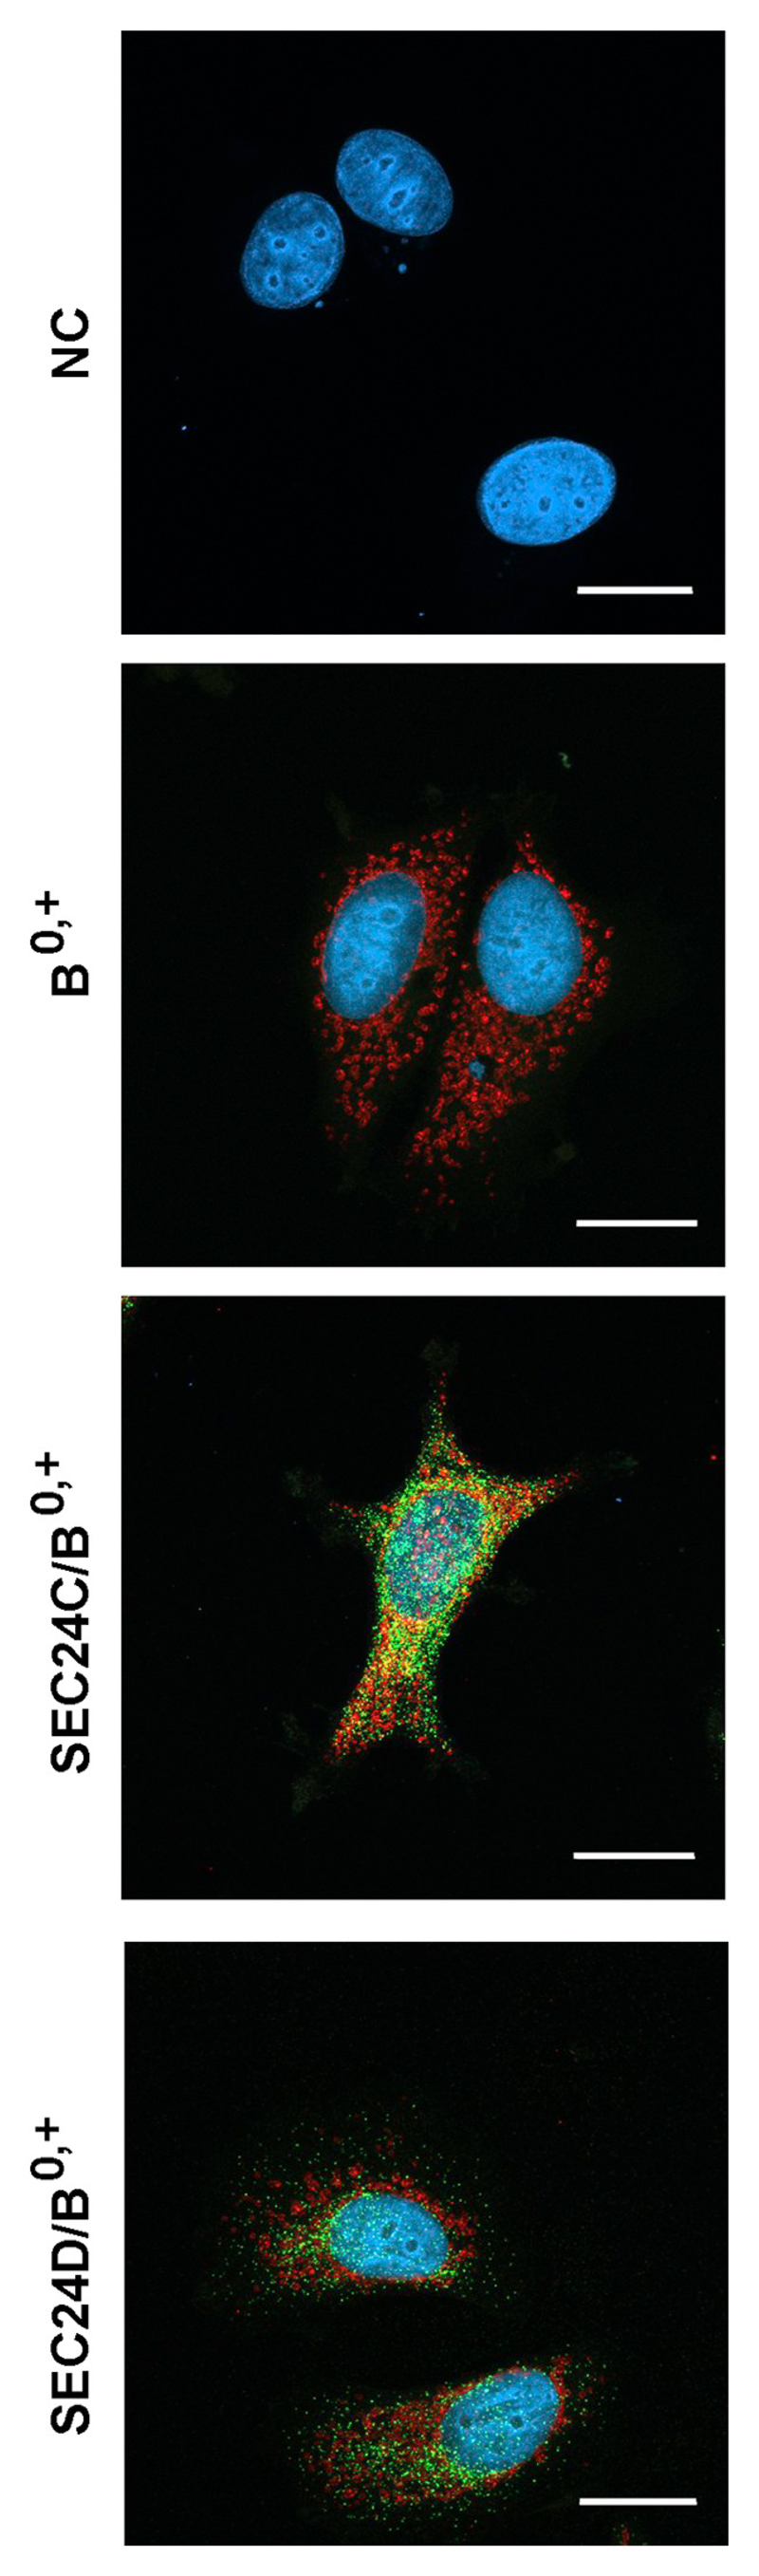 Localization of ATB 0,+ and SEC24C in MCF7 cells. Cells were fixed with methanol, as described in Materials and methods . They were incubated, as indicated, with either anti-SEC24C or anti-SEC24D antibodies, detected with Alexa Fluor ® 488-conjugated AffinityPure Fab Fragment Goat Anti-Rabbit IgG (H + L) (green). Further treatment was performed as described in Materials and methods Section 2.5 . Next the cells were incubated with anti-ATB 0,+ antibodies conjugated with biotin, followed by incubation with AlexaFluor568 conjugated streptavidin (red). Nuclei are visualized with DAPI. NC, negative control without the primary antibodies. B 0,+ , analysis of B 0,+ localization without anti-SEC24 antibodies. Bar 20 μm.